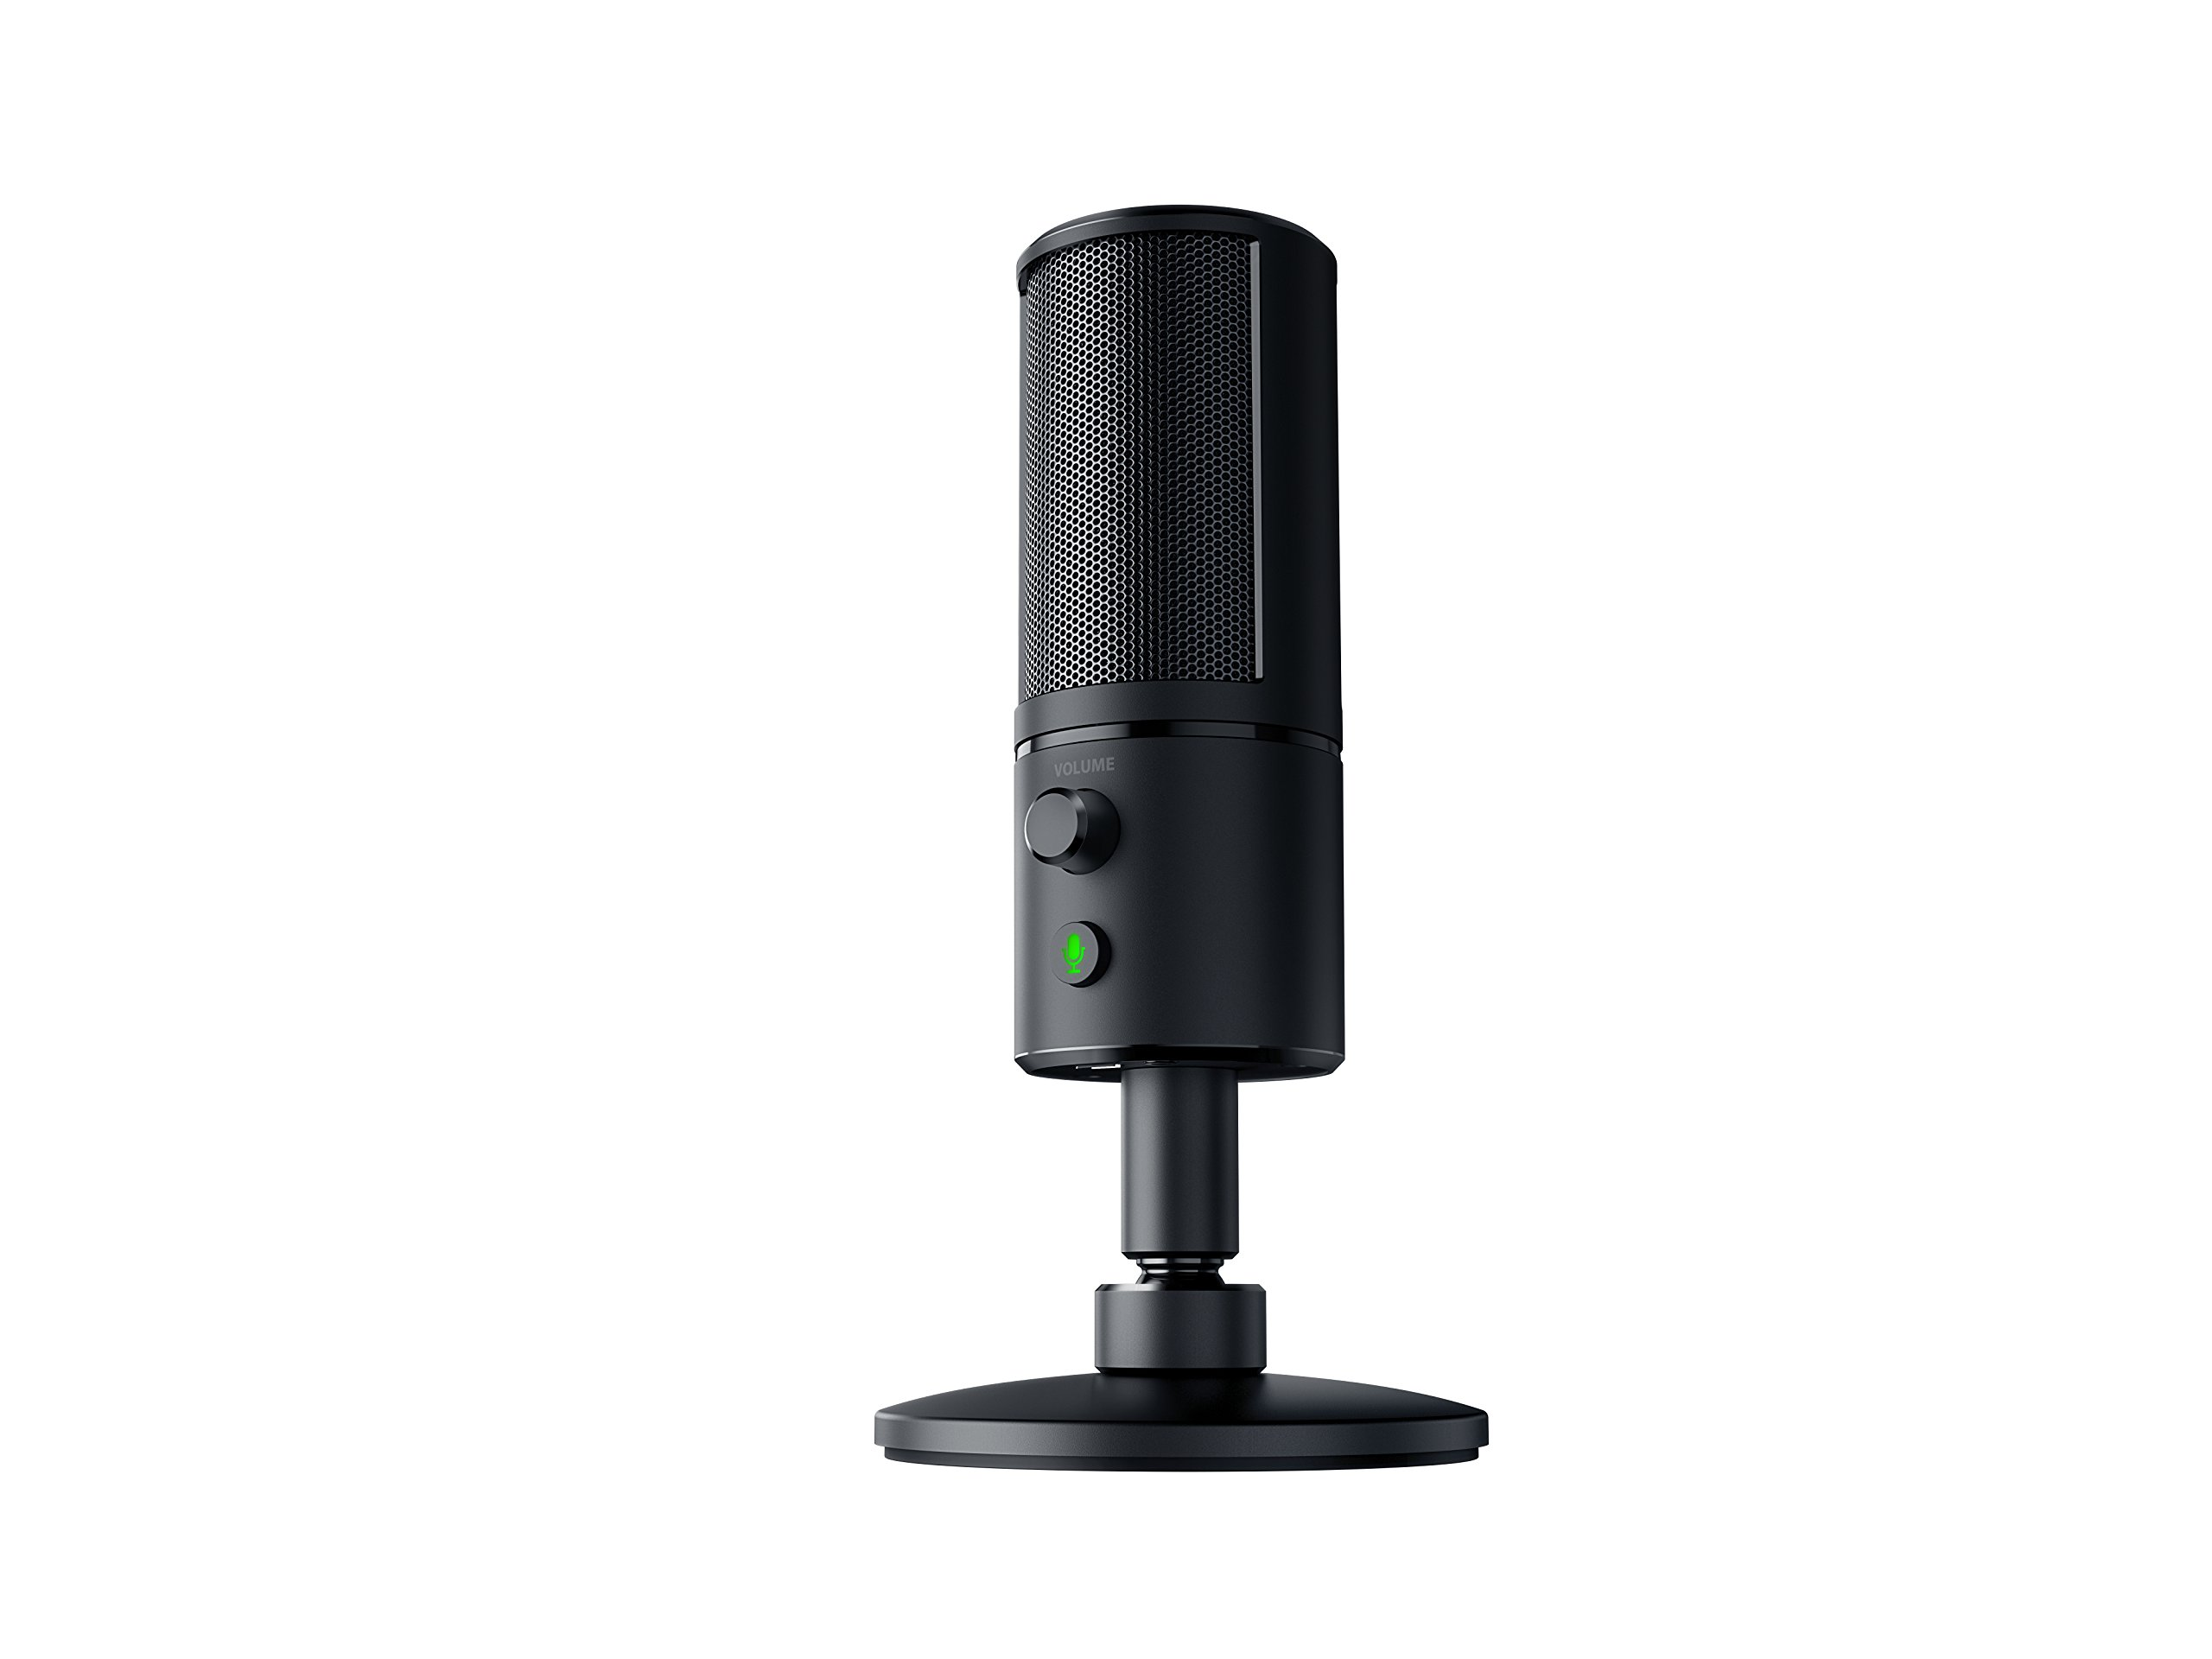 Razer Seiren X: Supercardiod Pick-Up Pattern - Condenser Mic - Built-In Shock Mount - Professional Grade Streaming Microphone